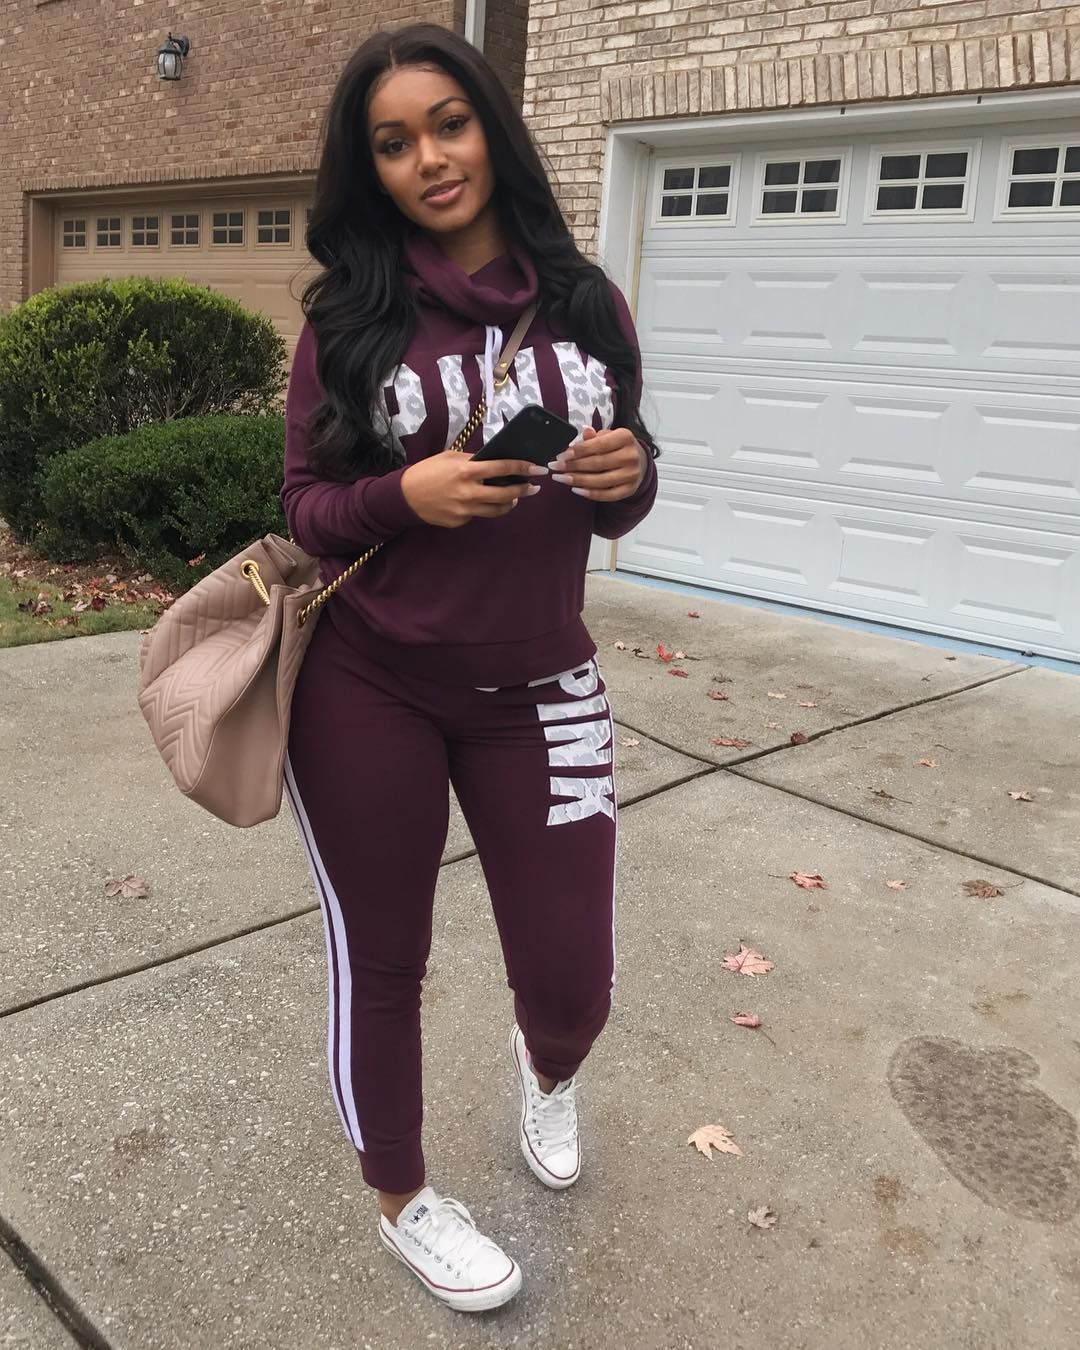 6751 Likes 95 Comments - Meeka Lina (@meekalina_) on ...